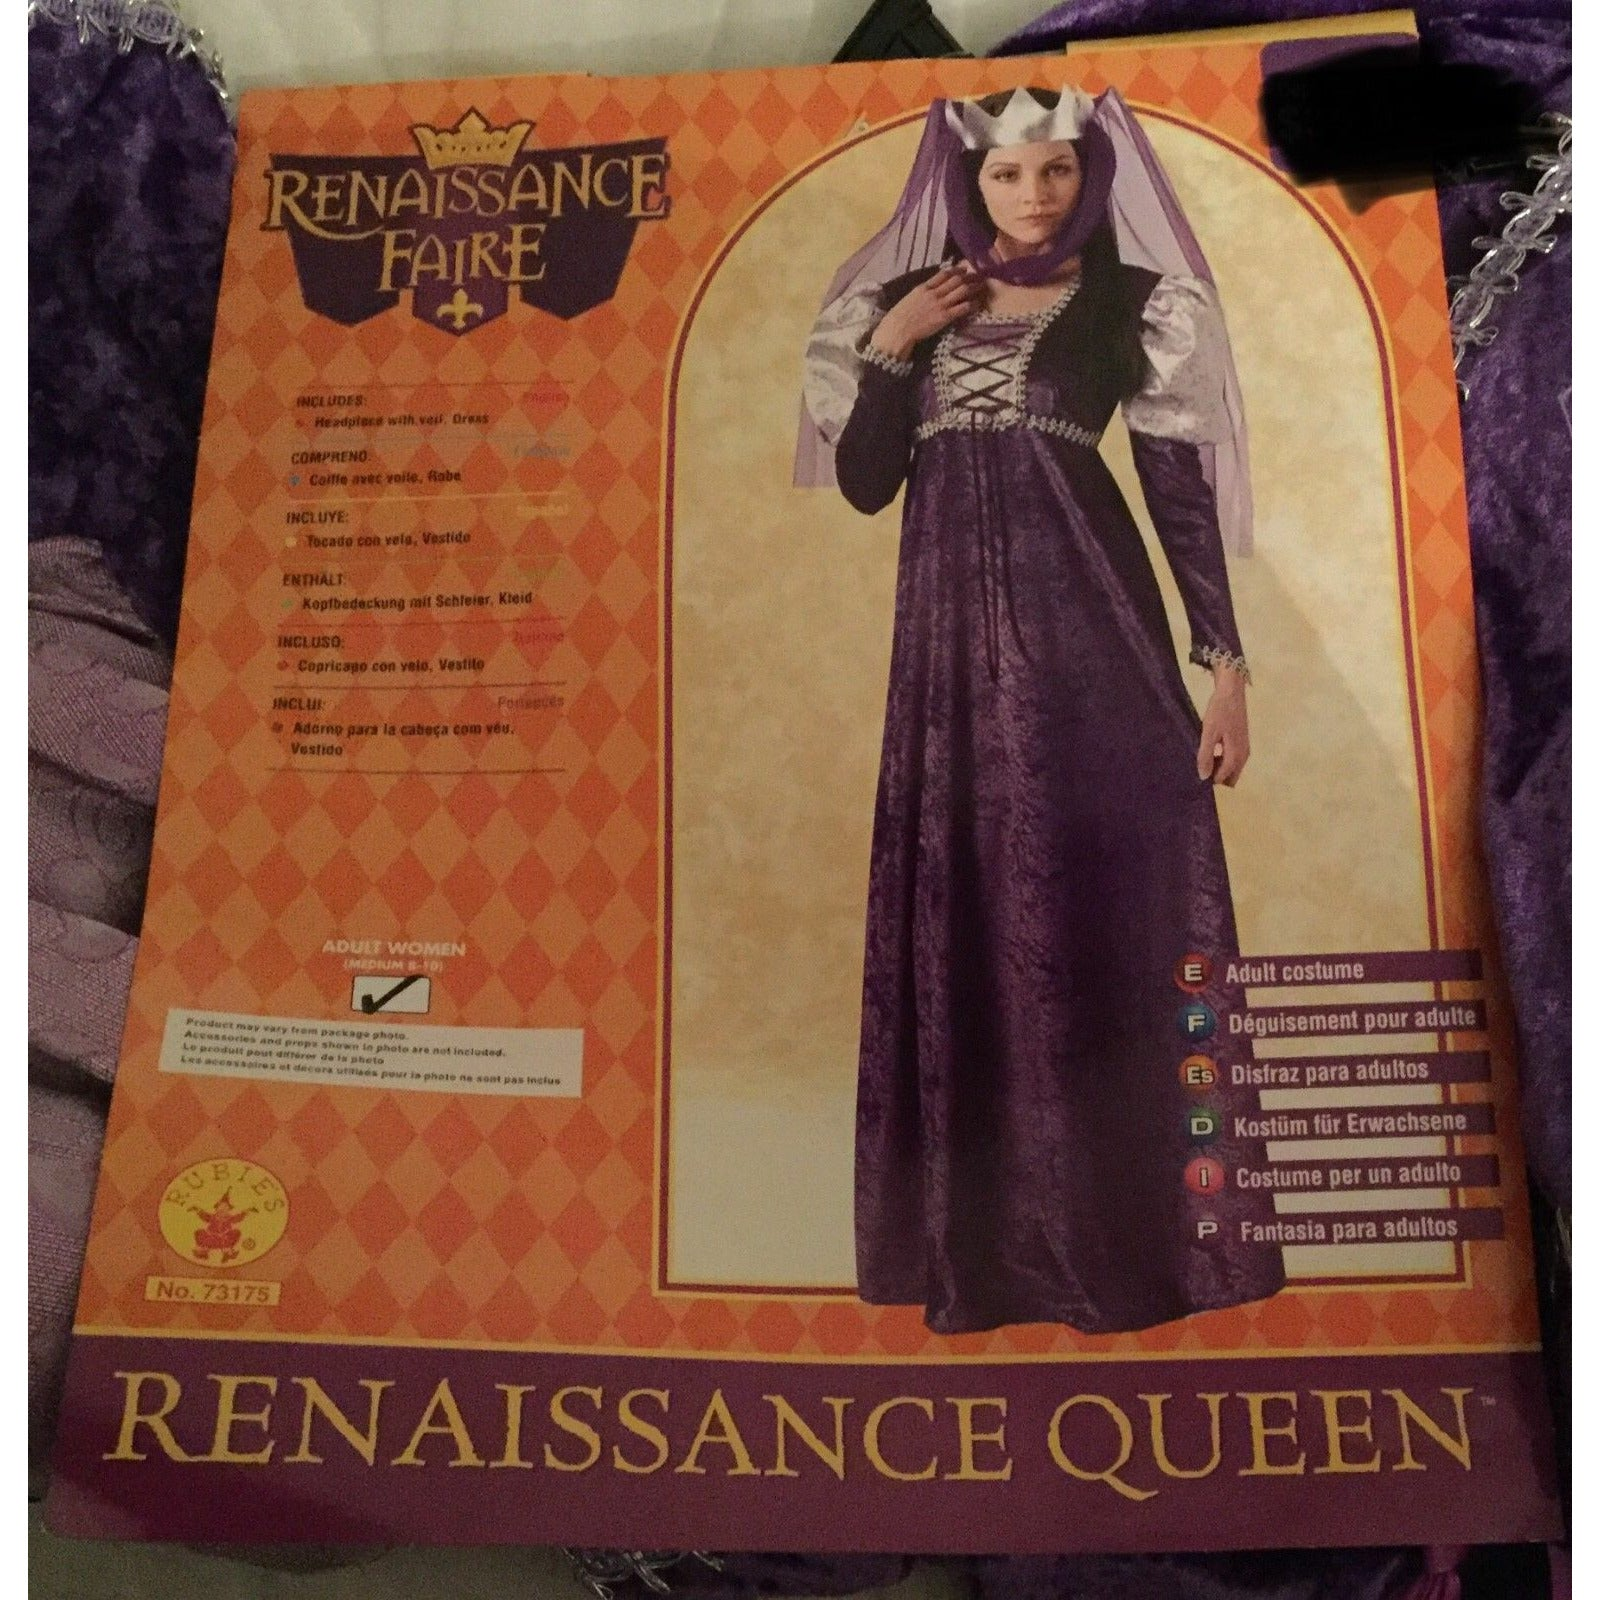 New Renaissance Faire Queen Costume, Womens Size 8-10, Purple